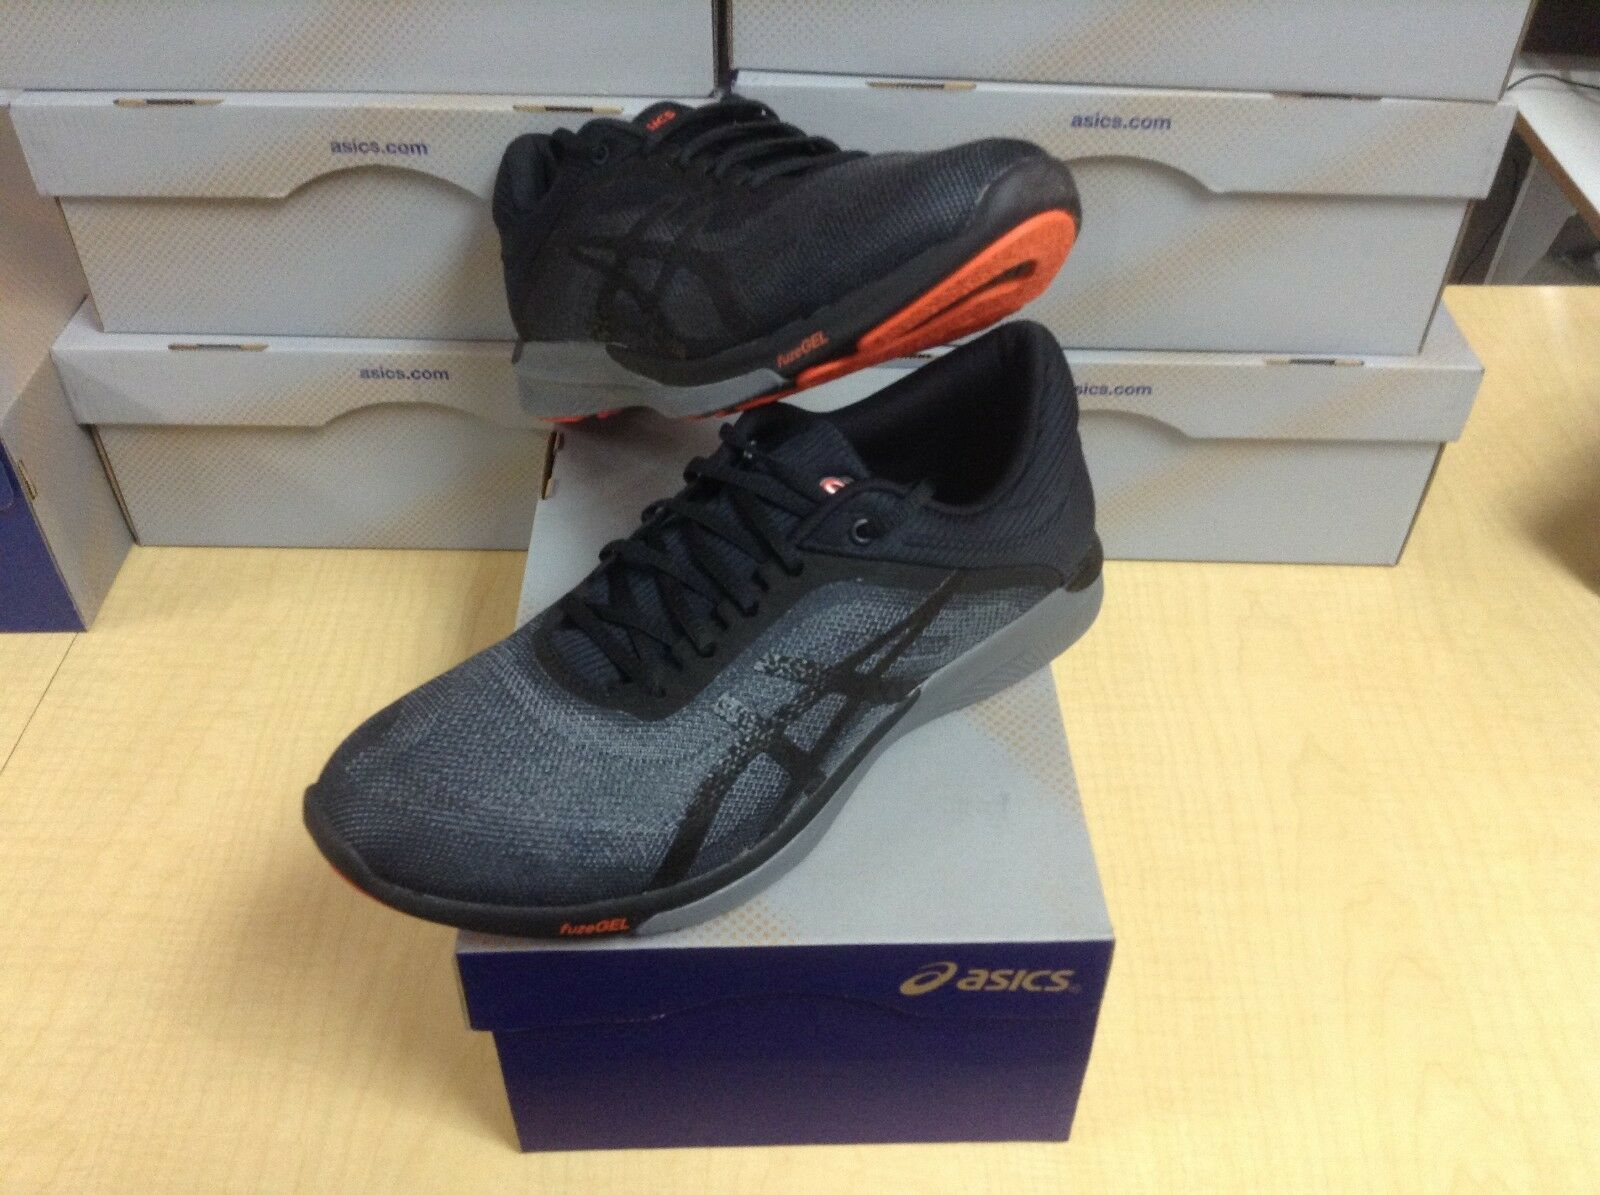 MEN'S ASICS - FUZEX RUSH (T718N-9097) - SIZE 11.5 - 40% OFF